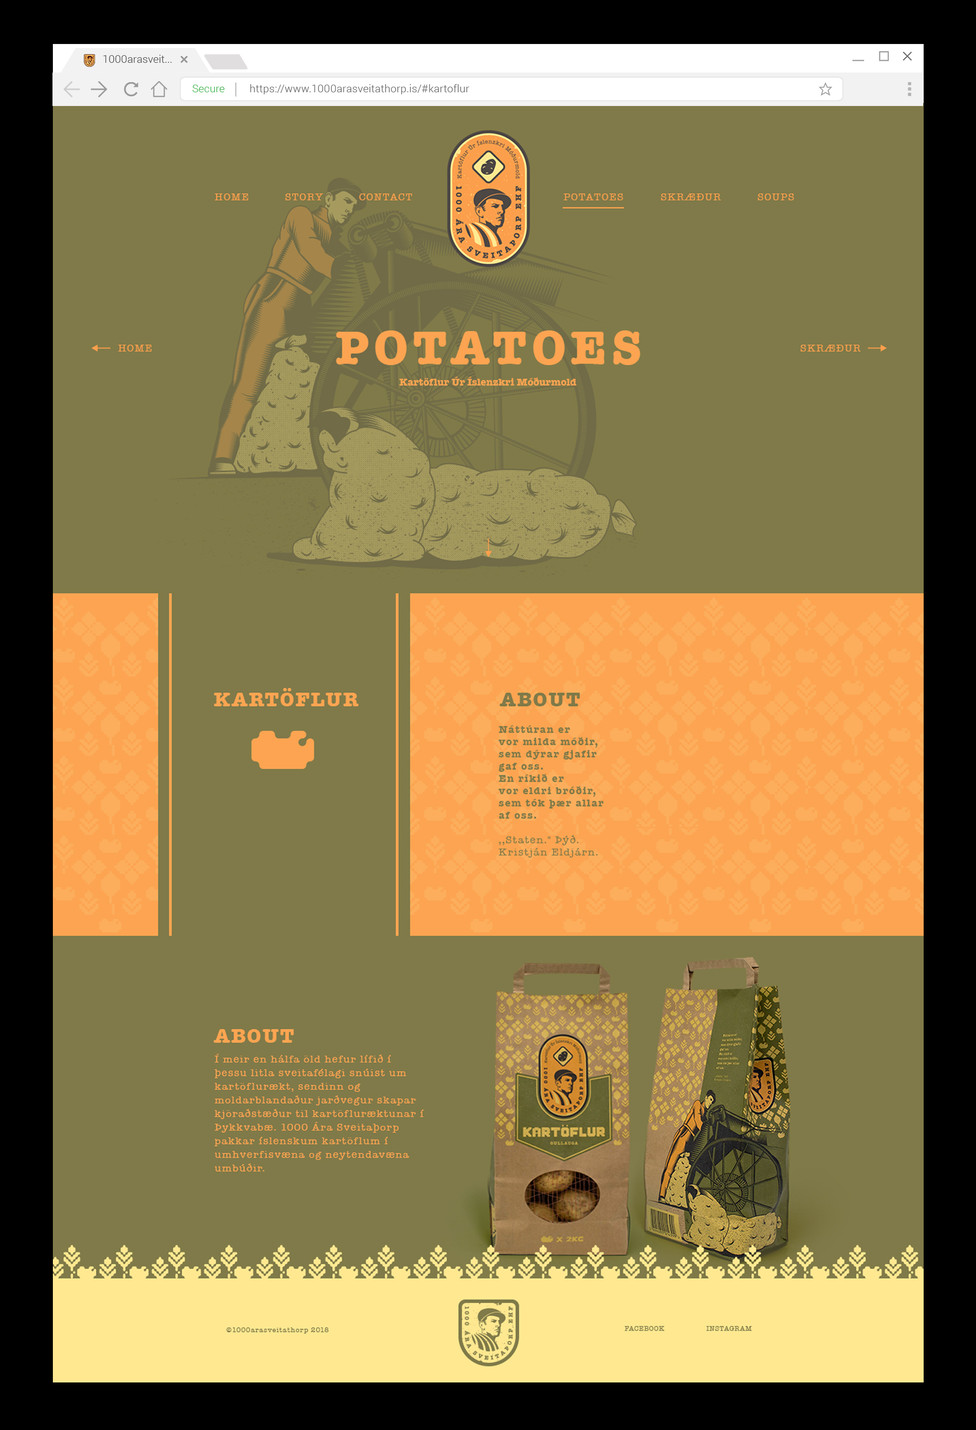 Web - Potato Page - Mockup copy.jpg